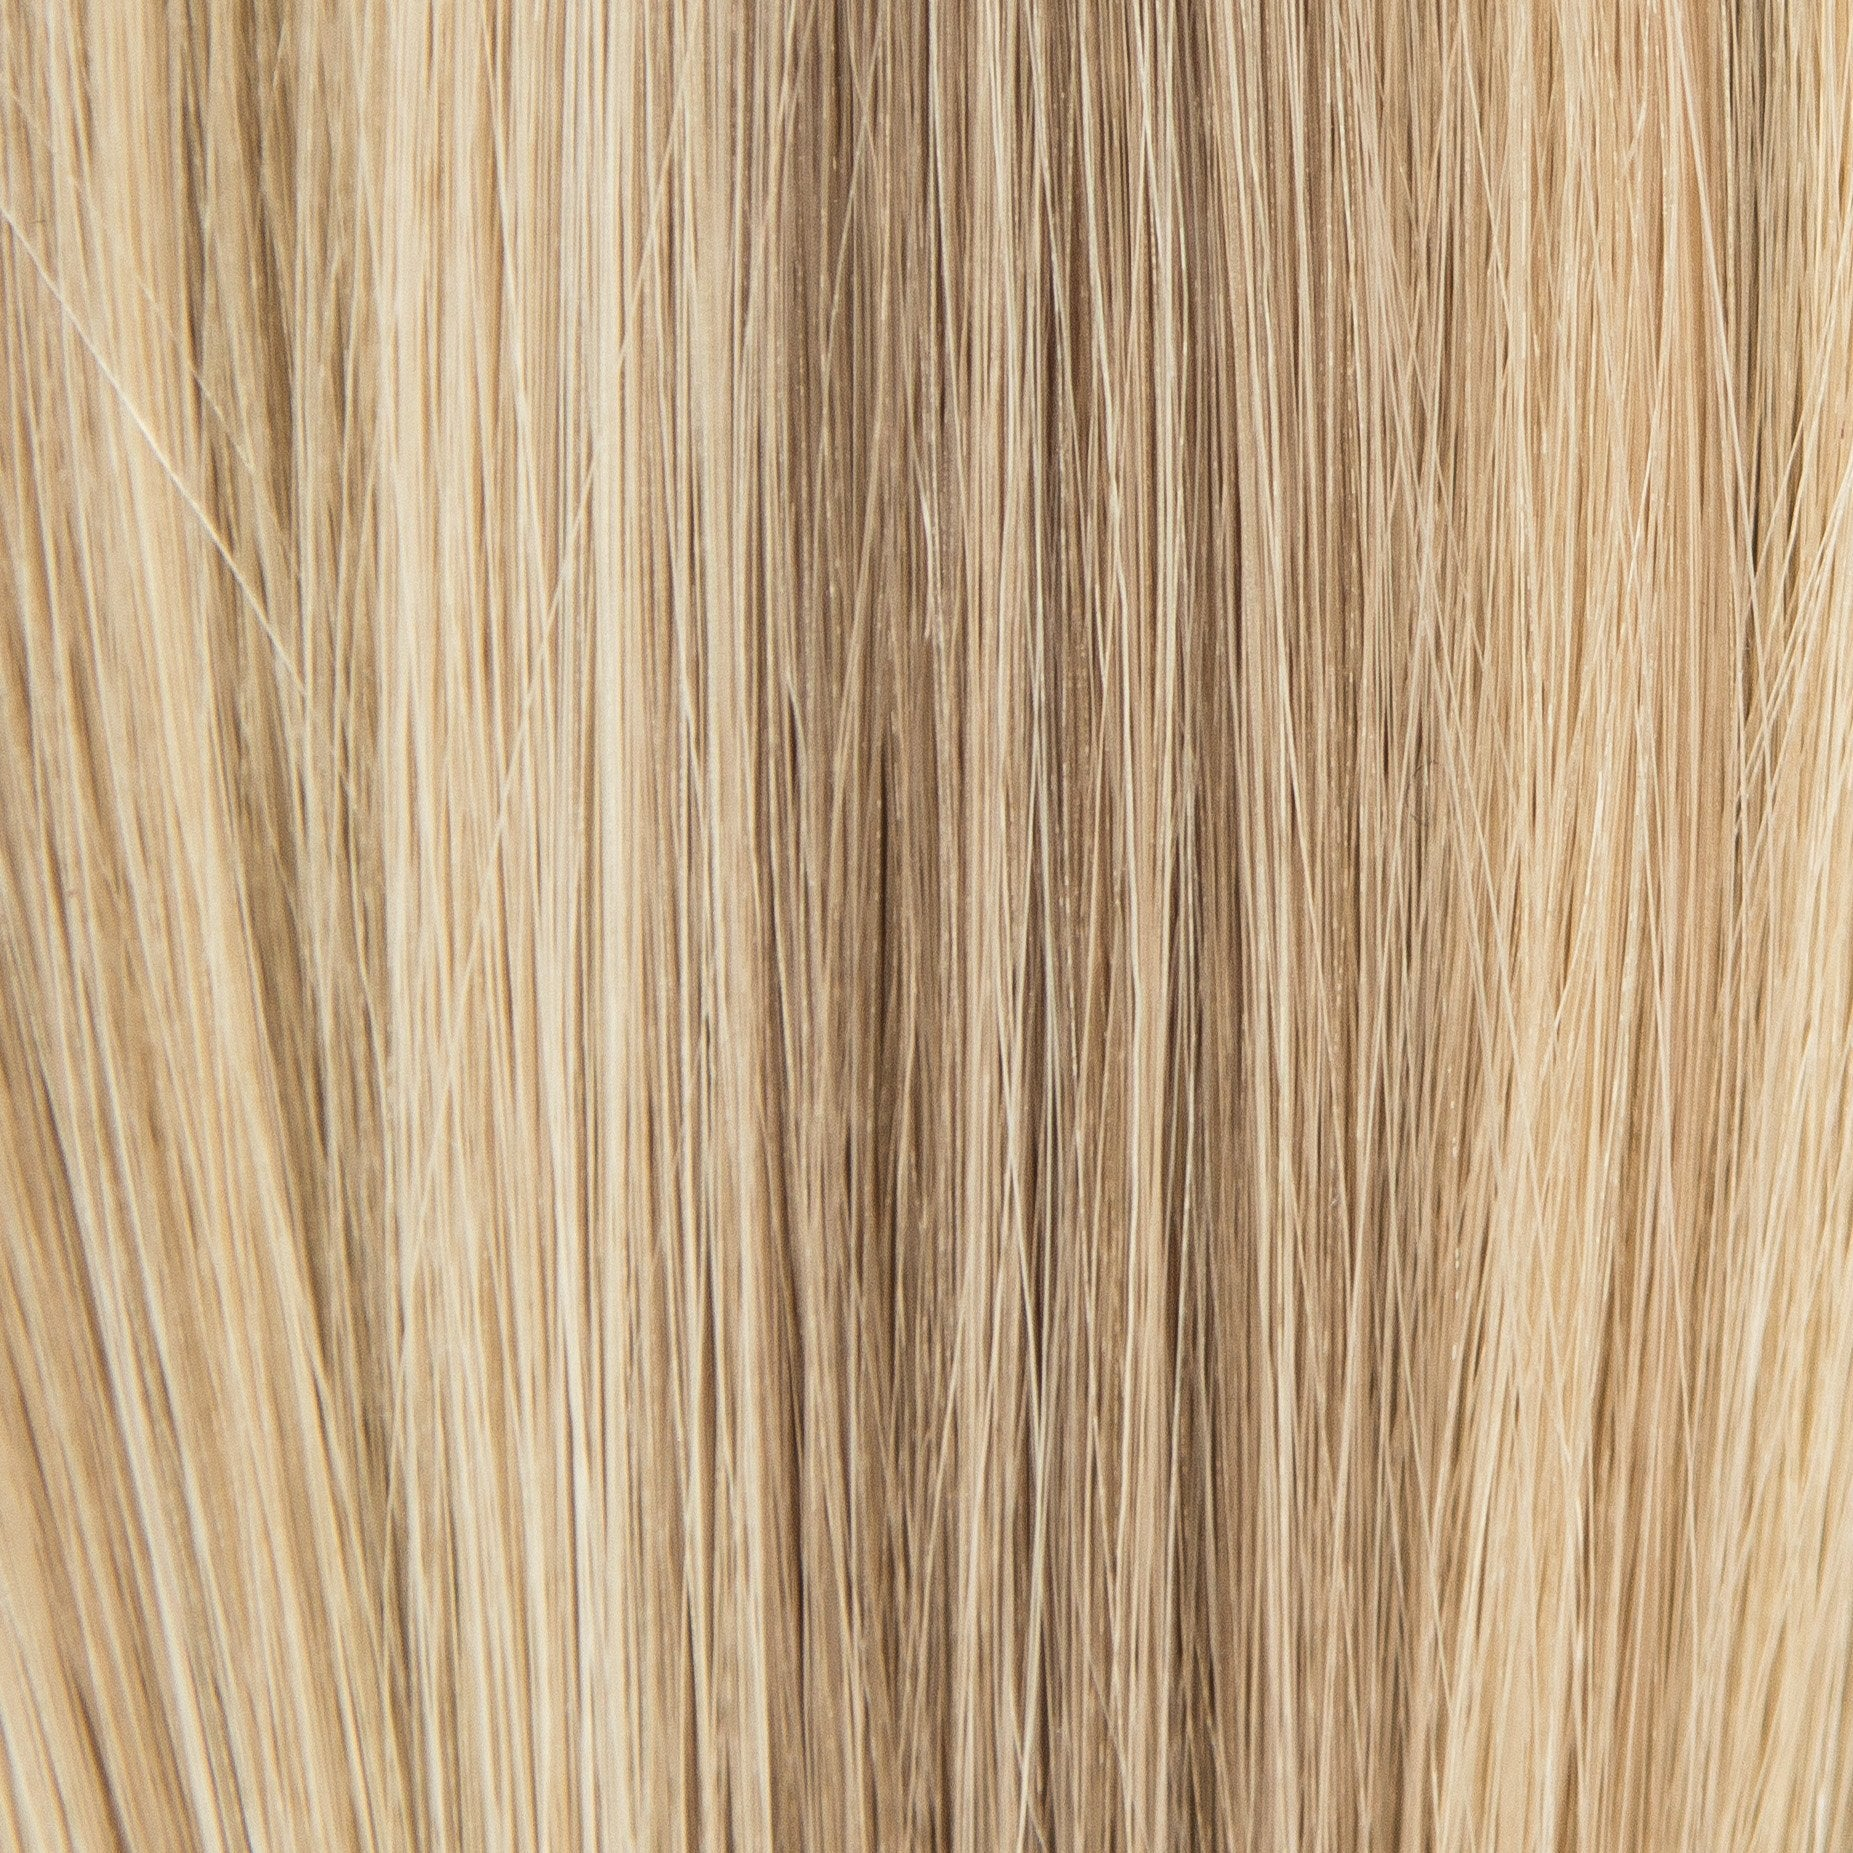 Laced Hair Keratin Bond Extensions Dimensional #10/16